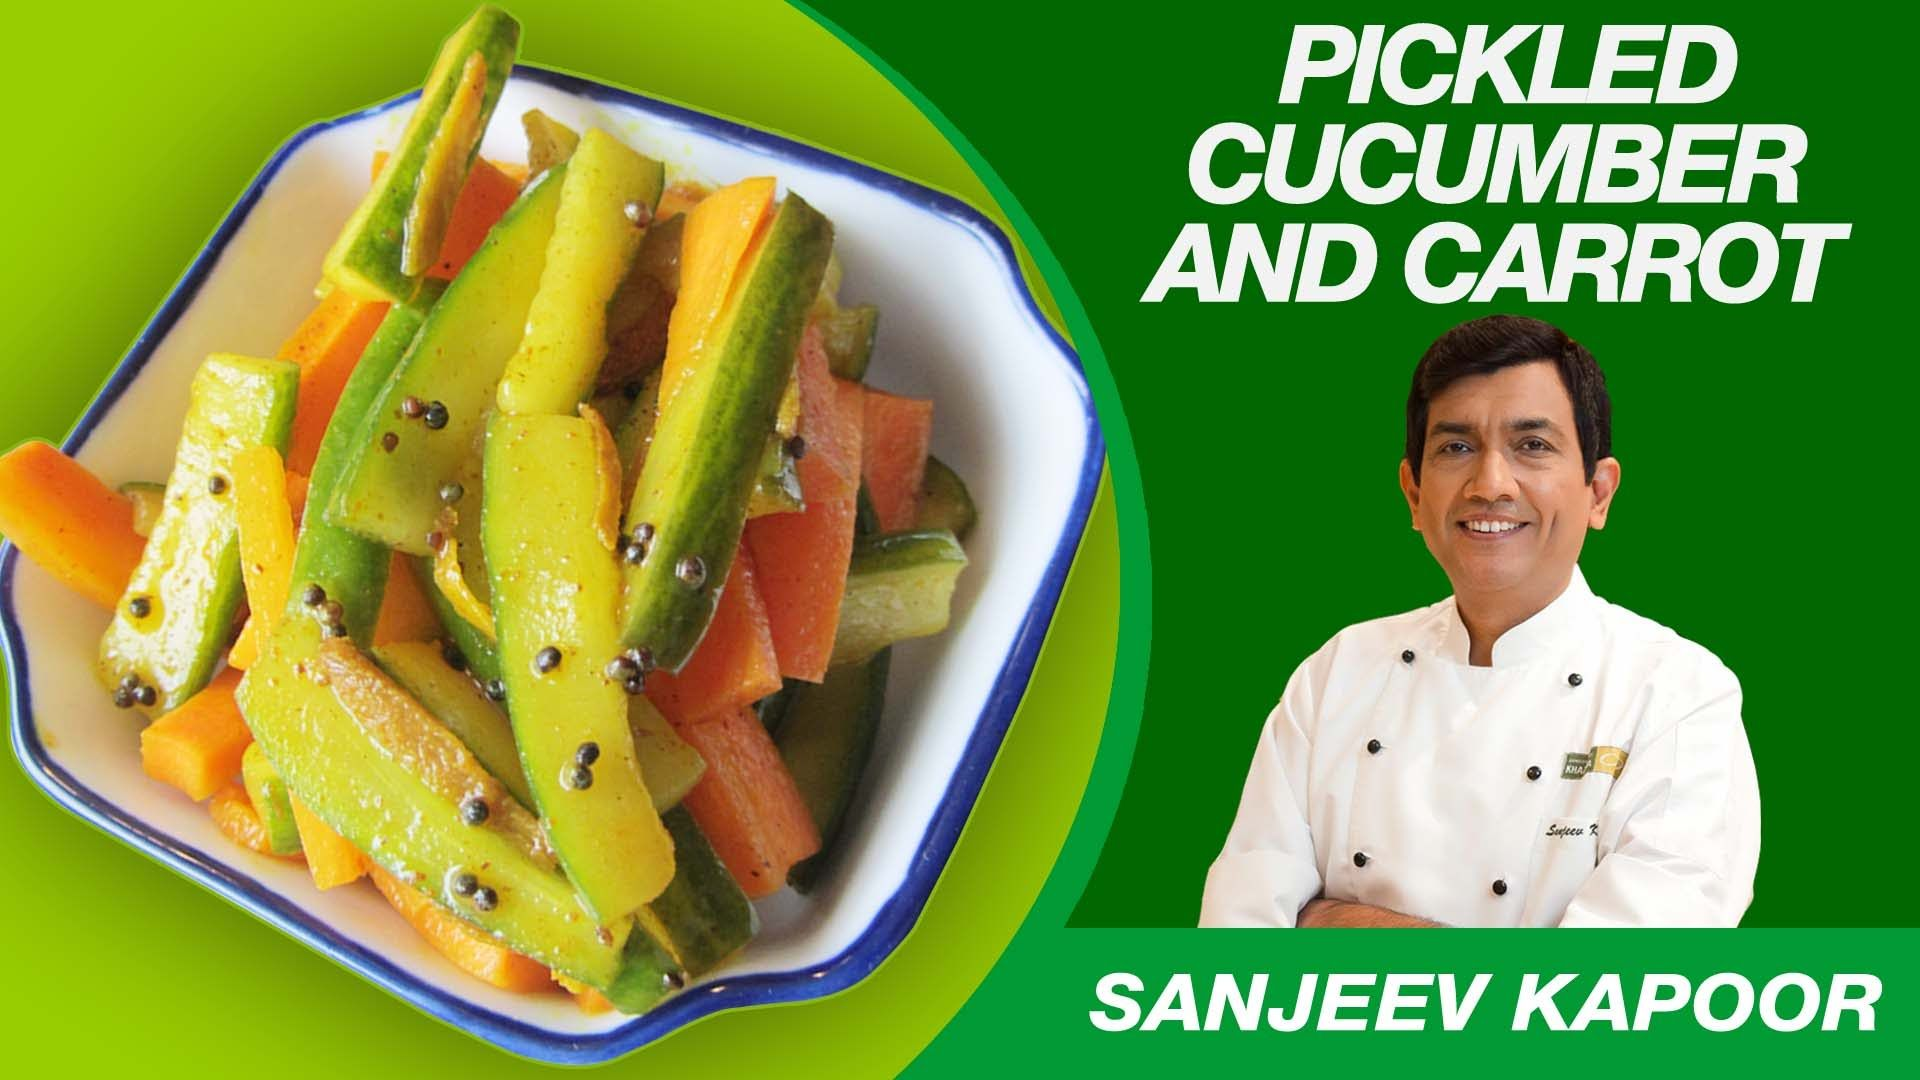 Pickled cucumber carrot salad recipe by sanjeev kapoor pickled cucumber carrot salad recipe by sanjeev kapoor nutritious tasty salad forumfinder Gallery